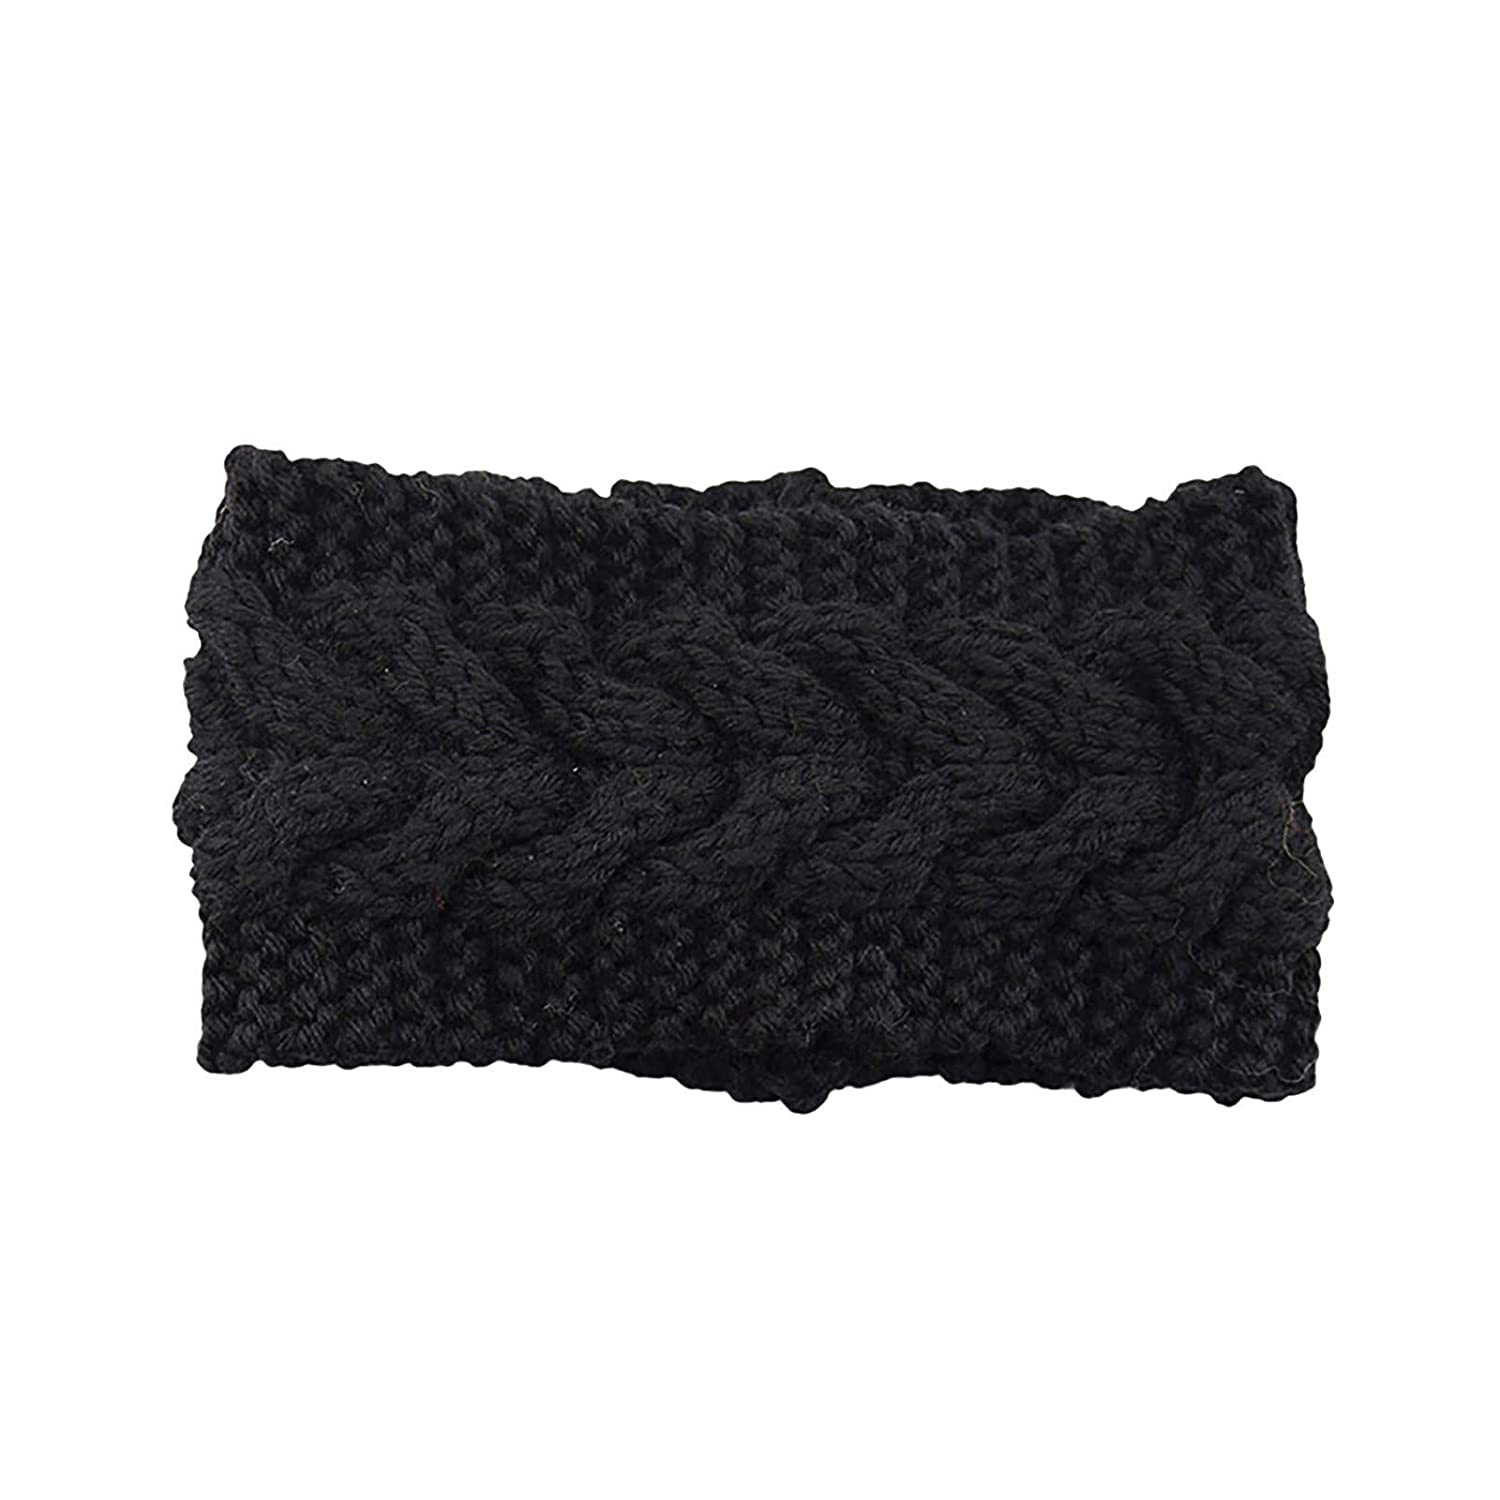 Knotted Headbands For Women Unisex Elastic Knitted Thermal Head Hairband Sweet Girls Sport Hair Bands For Girls Criss Cross Turban Plain Headwrap Yoga Workout Vintage Hair Accessories